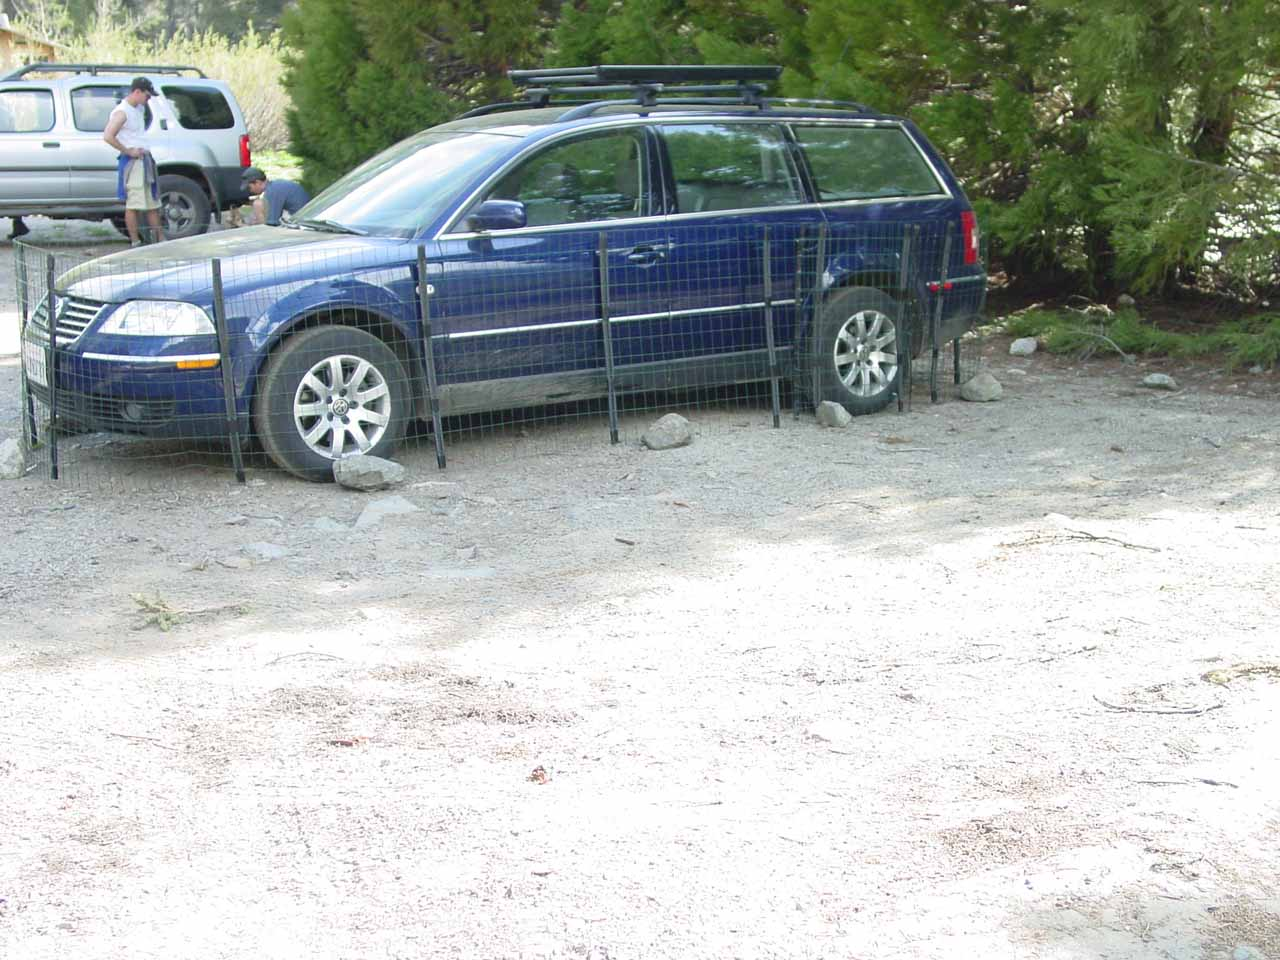 A car with a wire fence around it